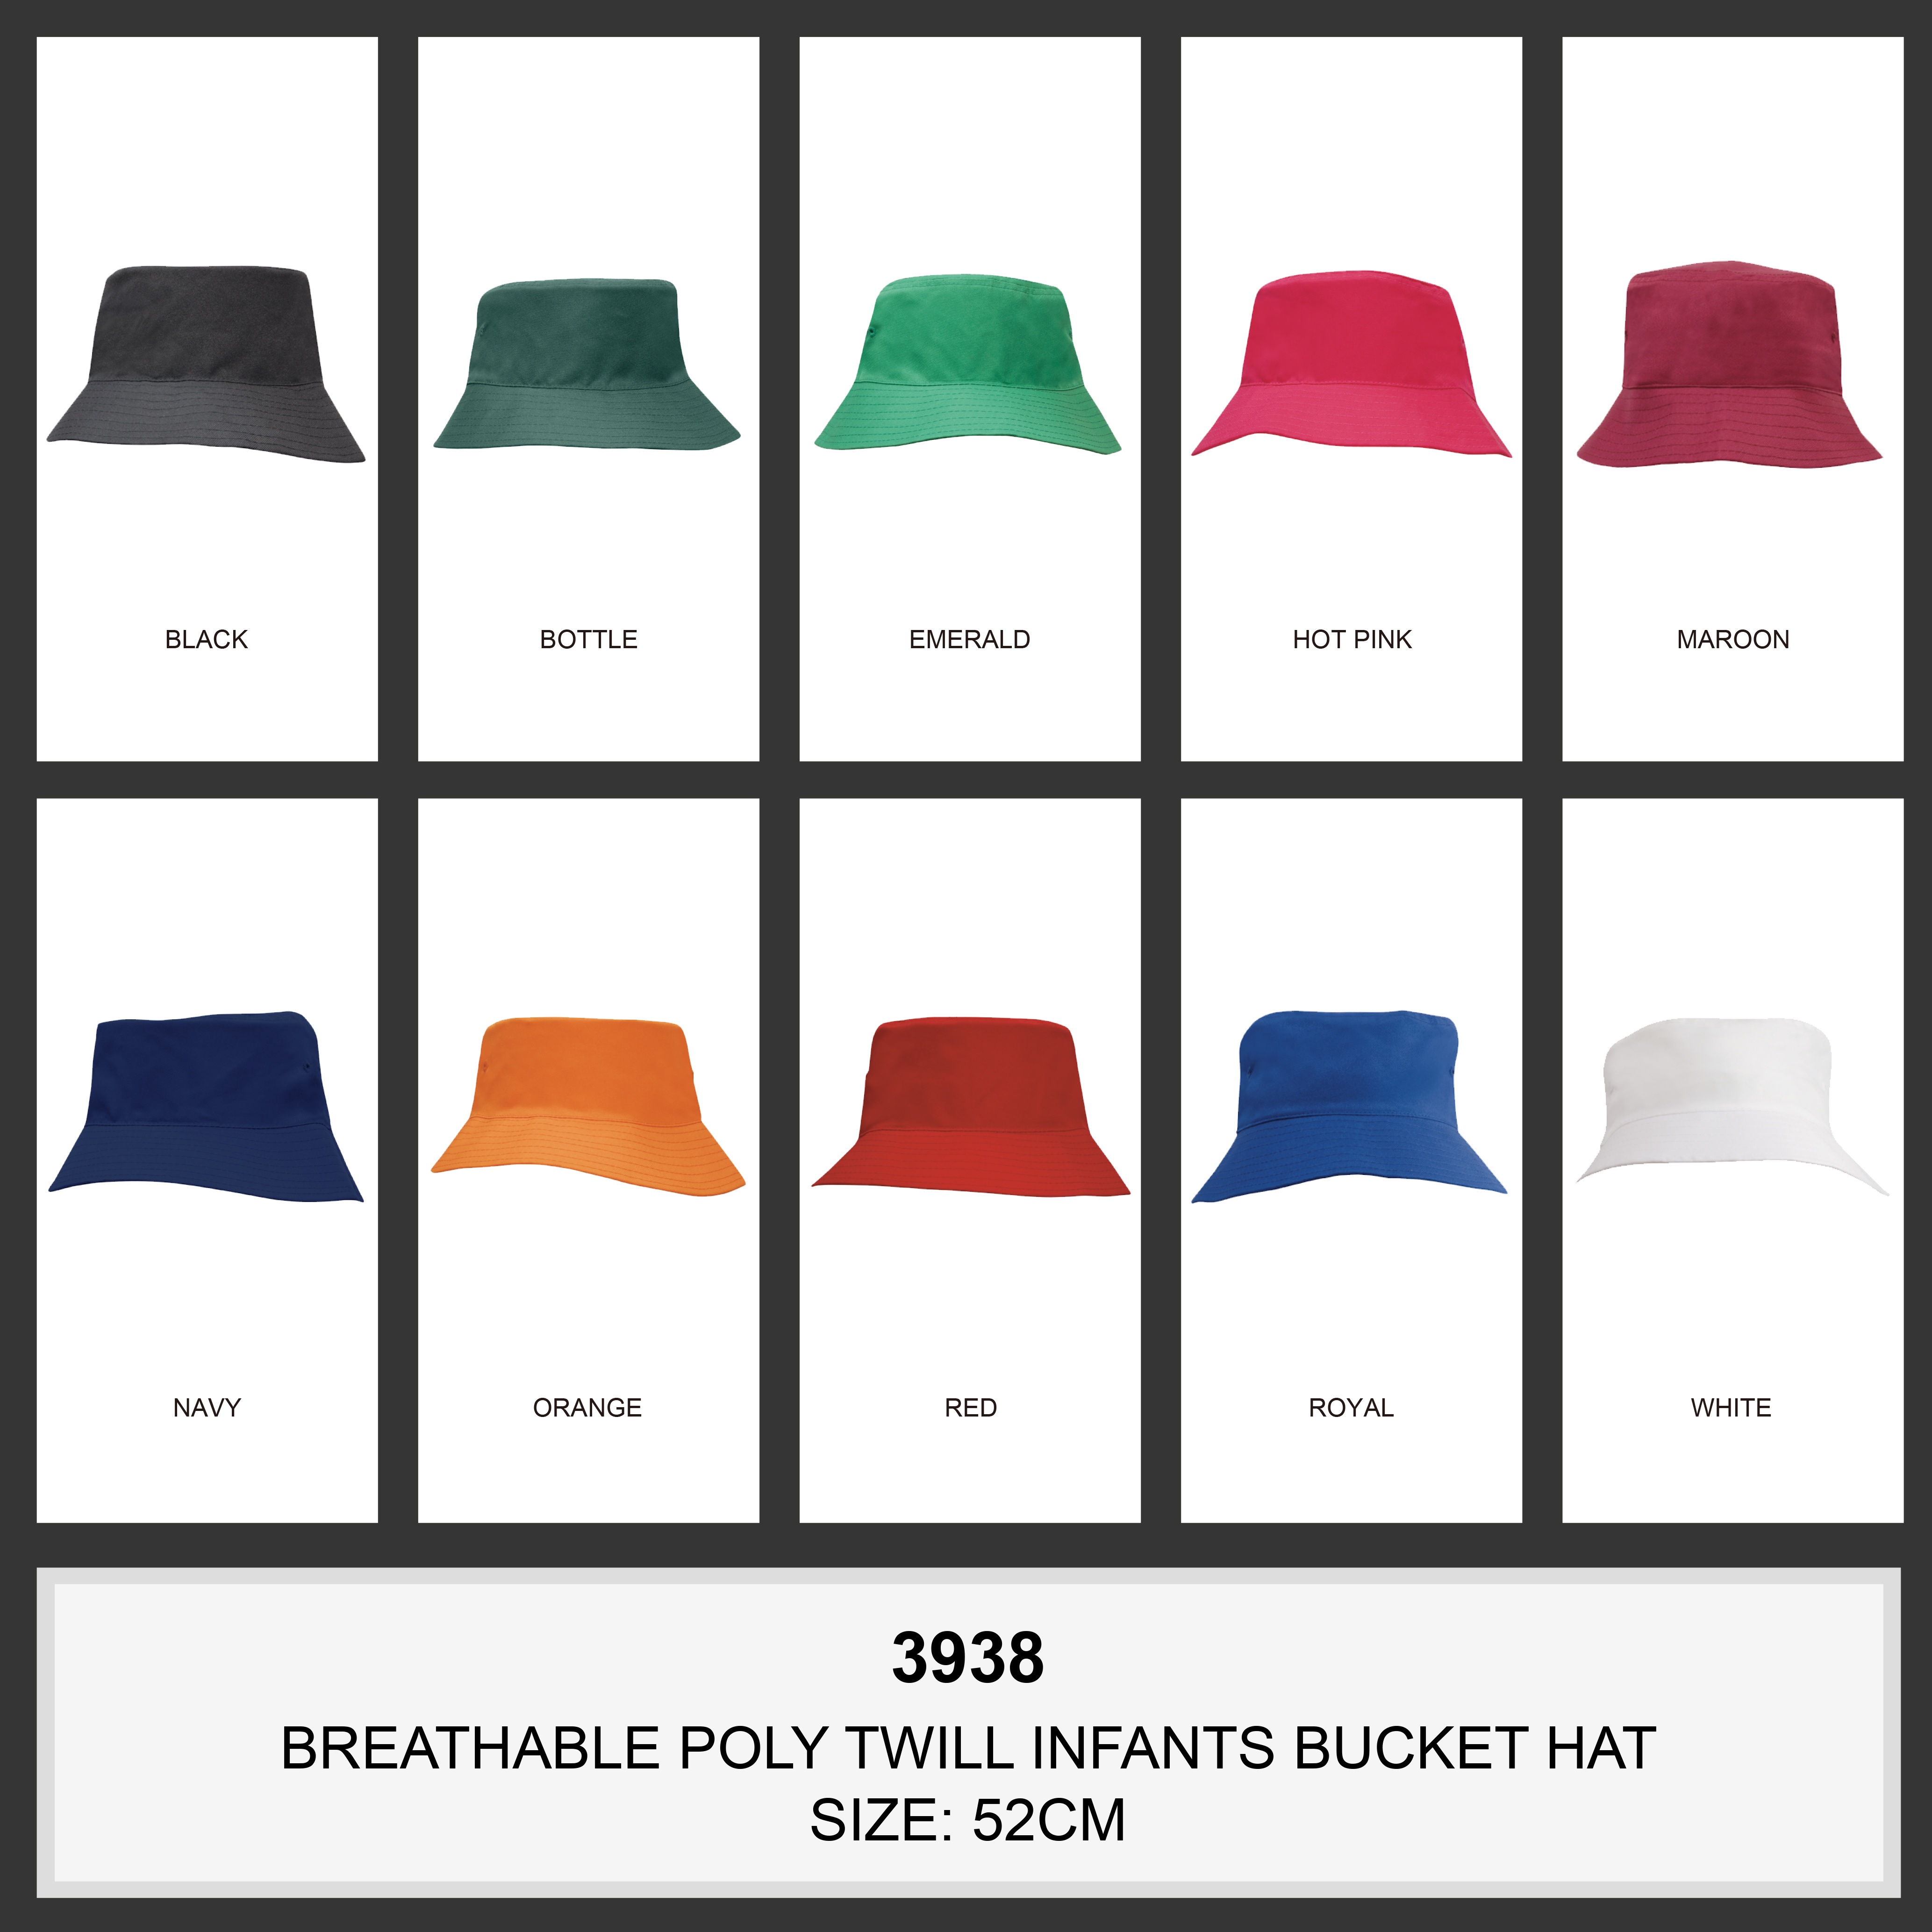 Breathable Poly Twill Infants Bucket Hat(3938) 2 | | Promotion Wear